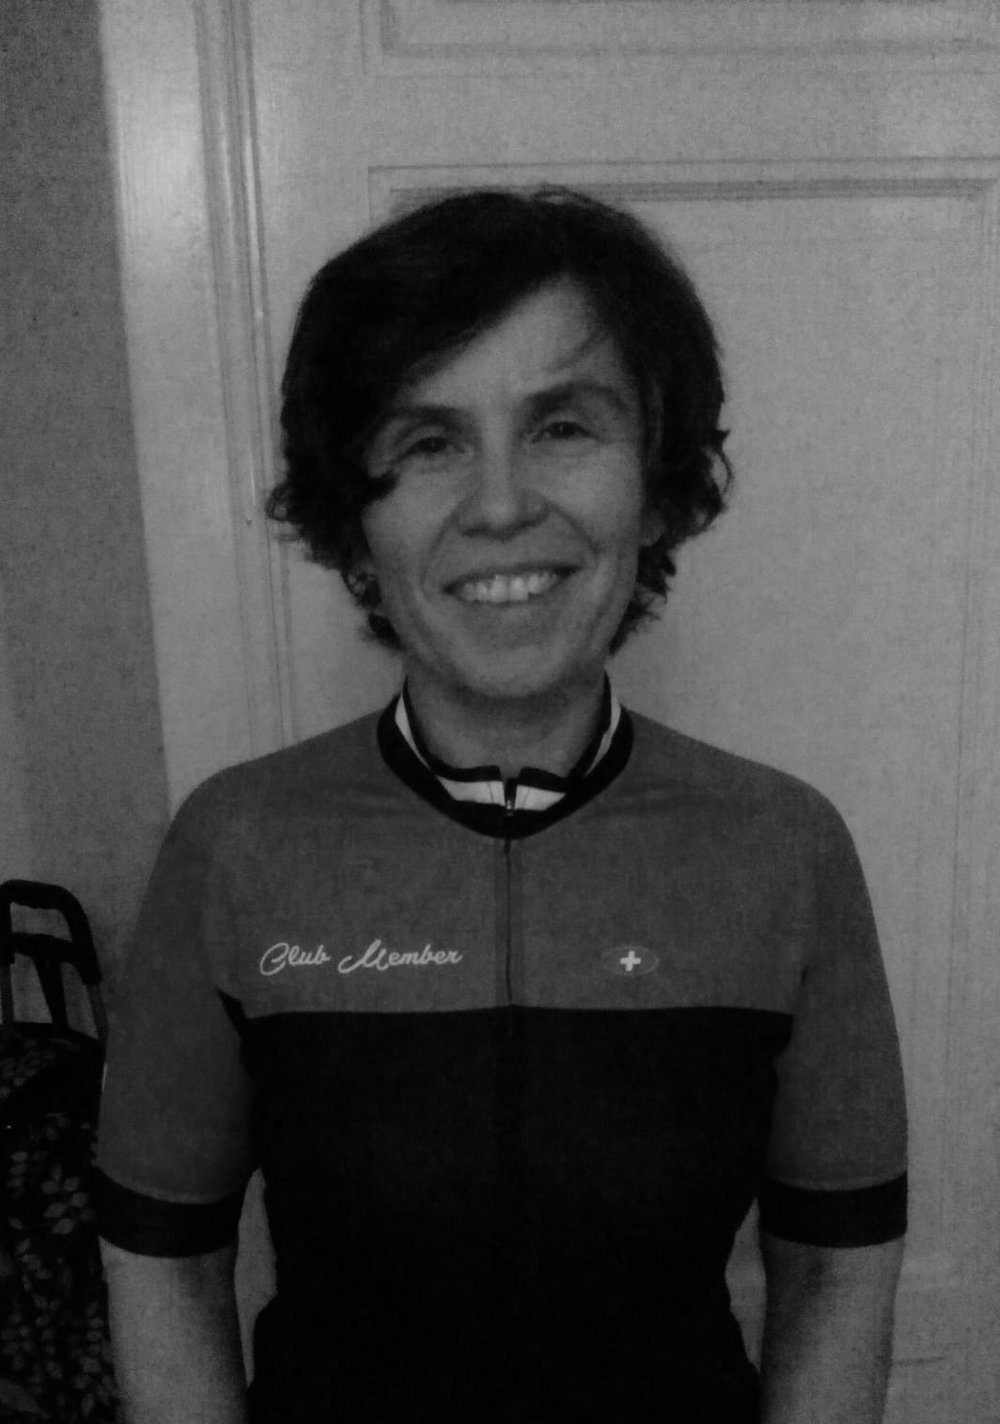 Nathalie Gain - Ride Leader: 4 years